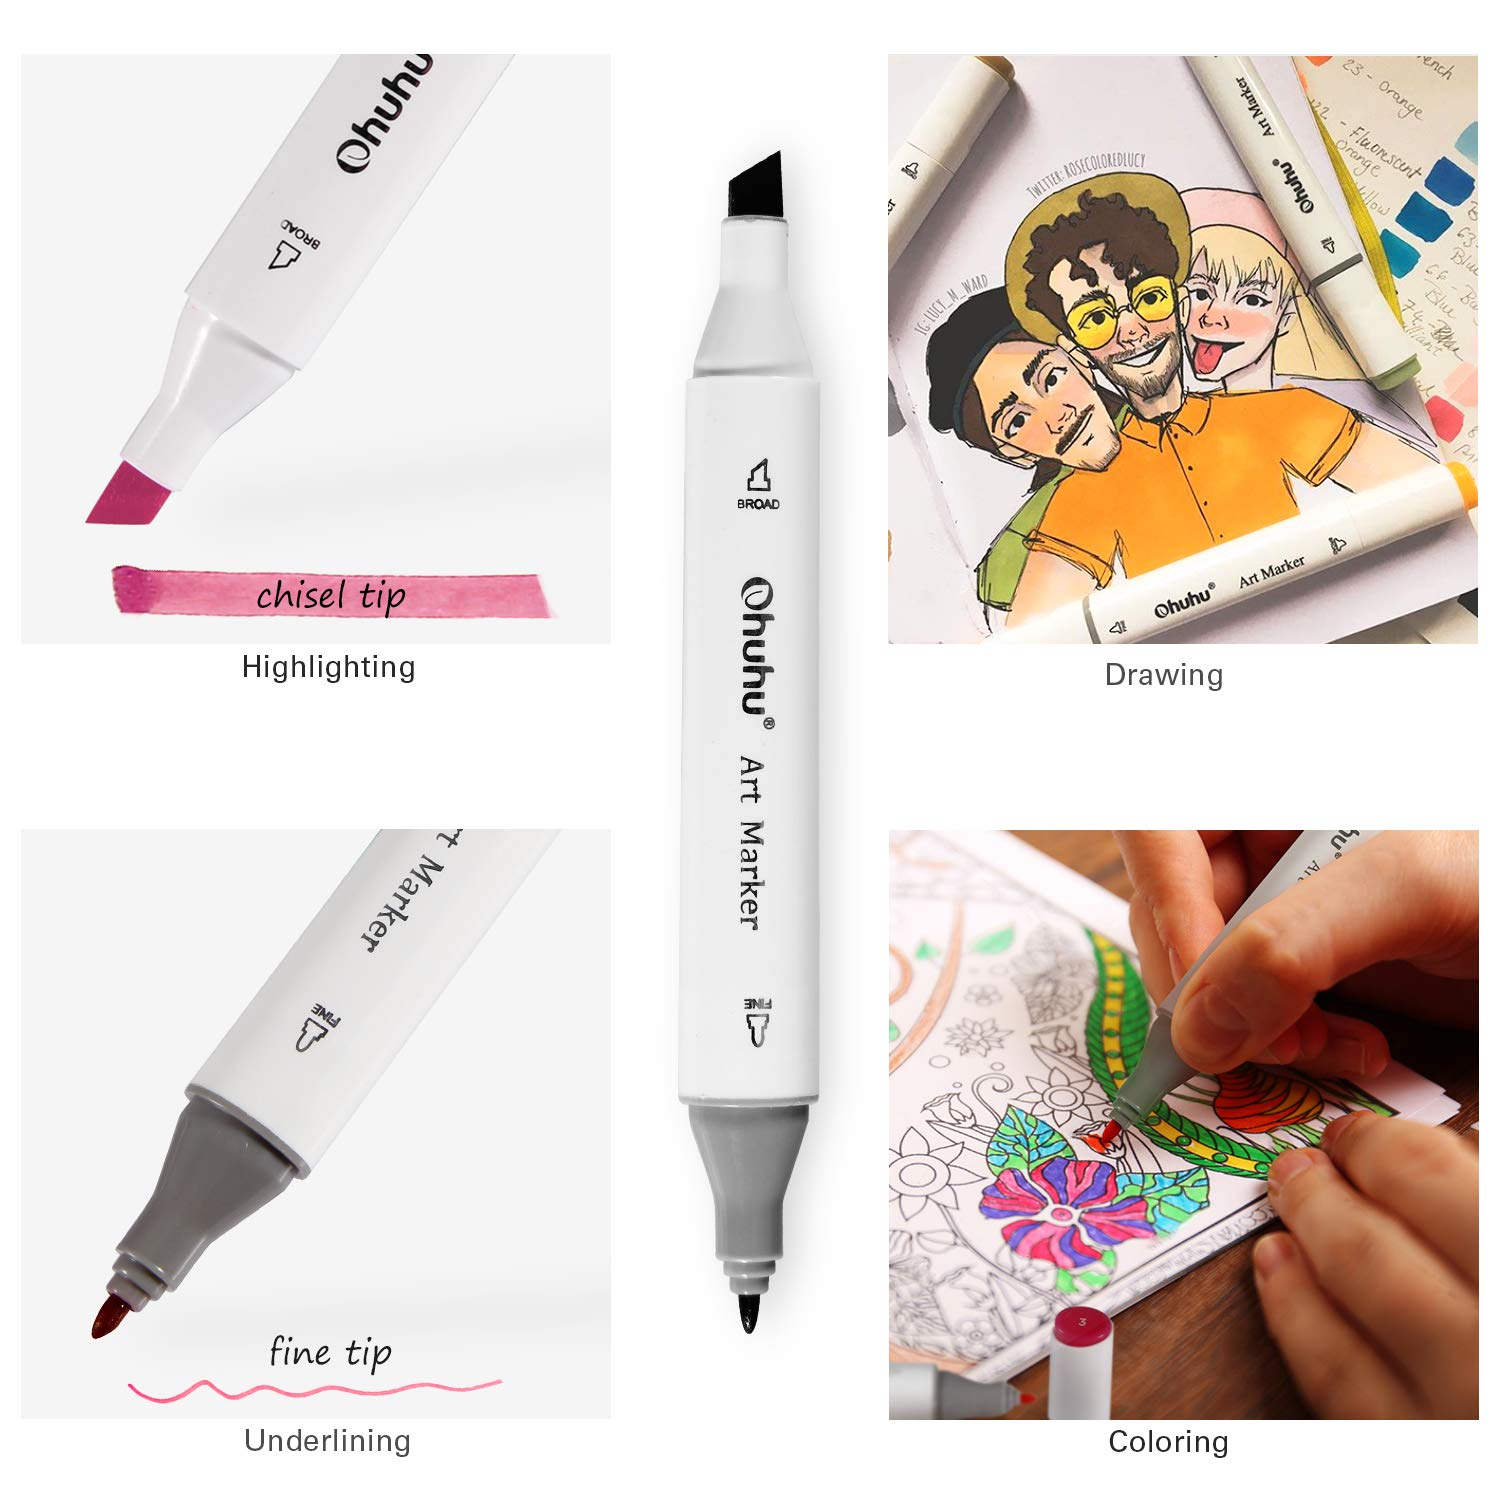 Ohuhu 120 Colors Dual Tips Sketch Marker Pens Art Markers Set with Carrying Case for Drawing Sketching Adult Coloring Books, Great Mothers' Day Gift Idea by Ohuhu (Image #3)